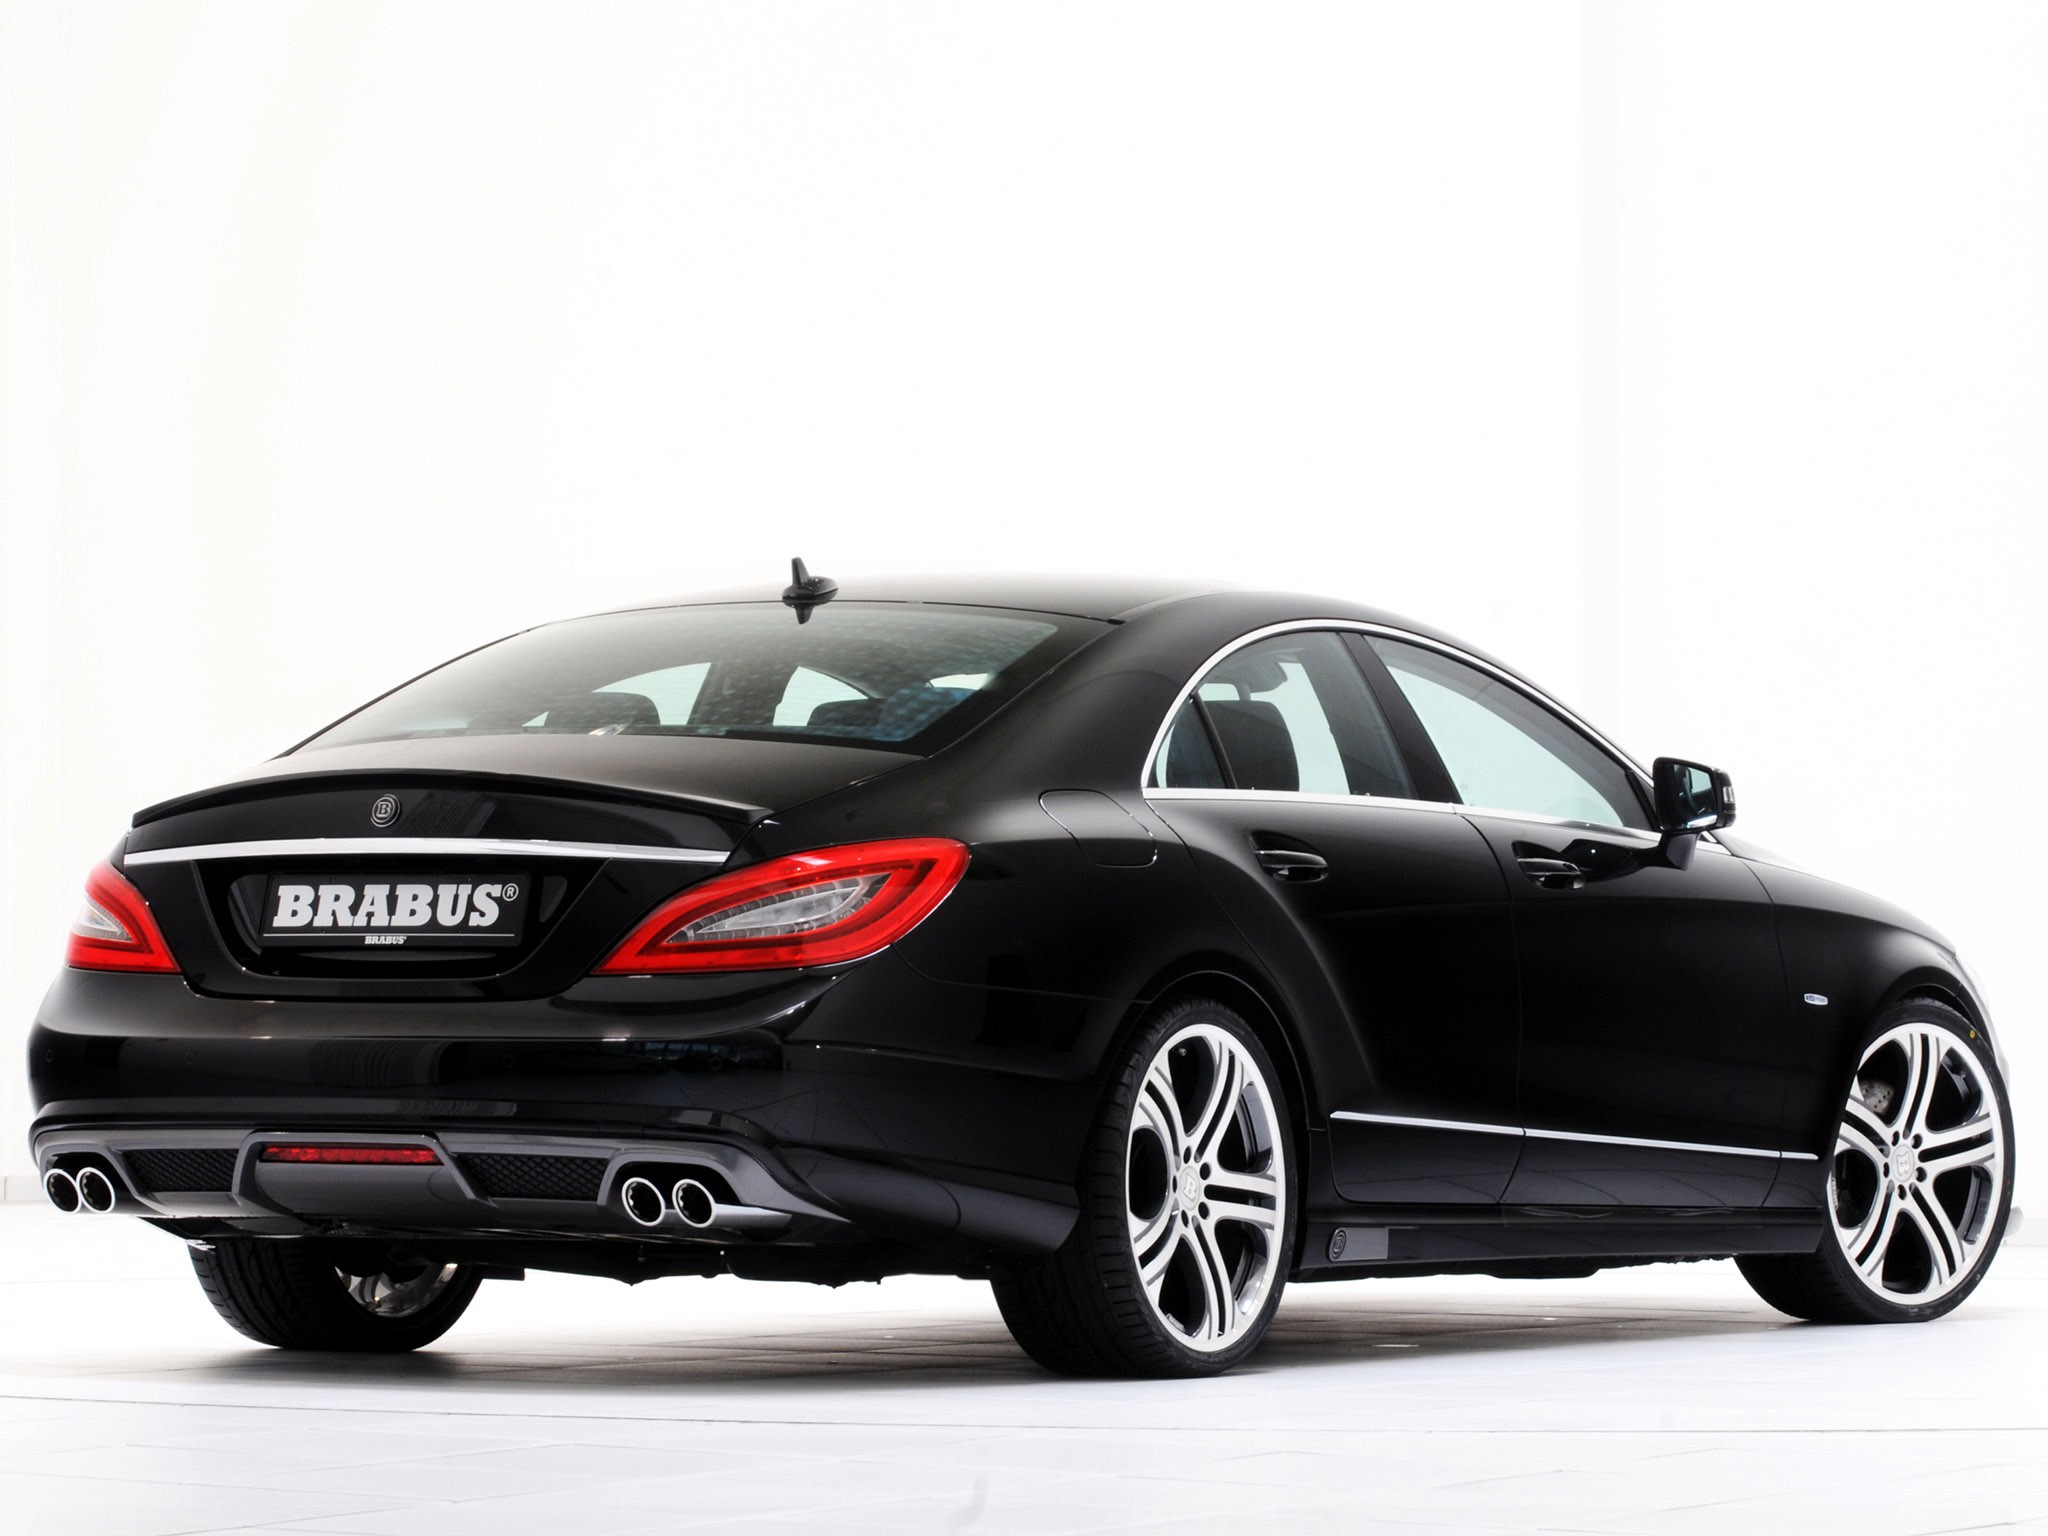 2011 Brabus Mercedes CLS AMG Sports Package C218